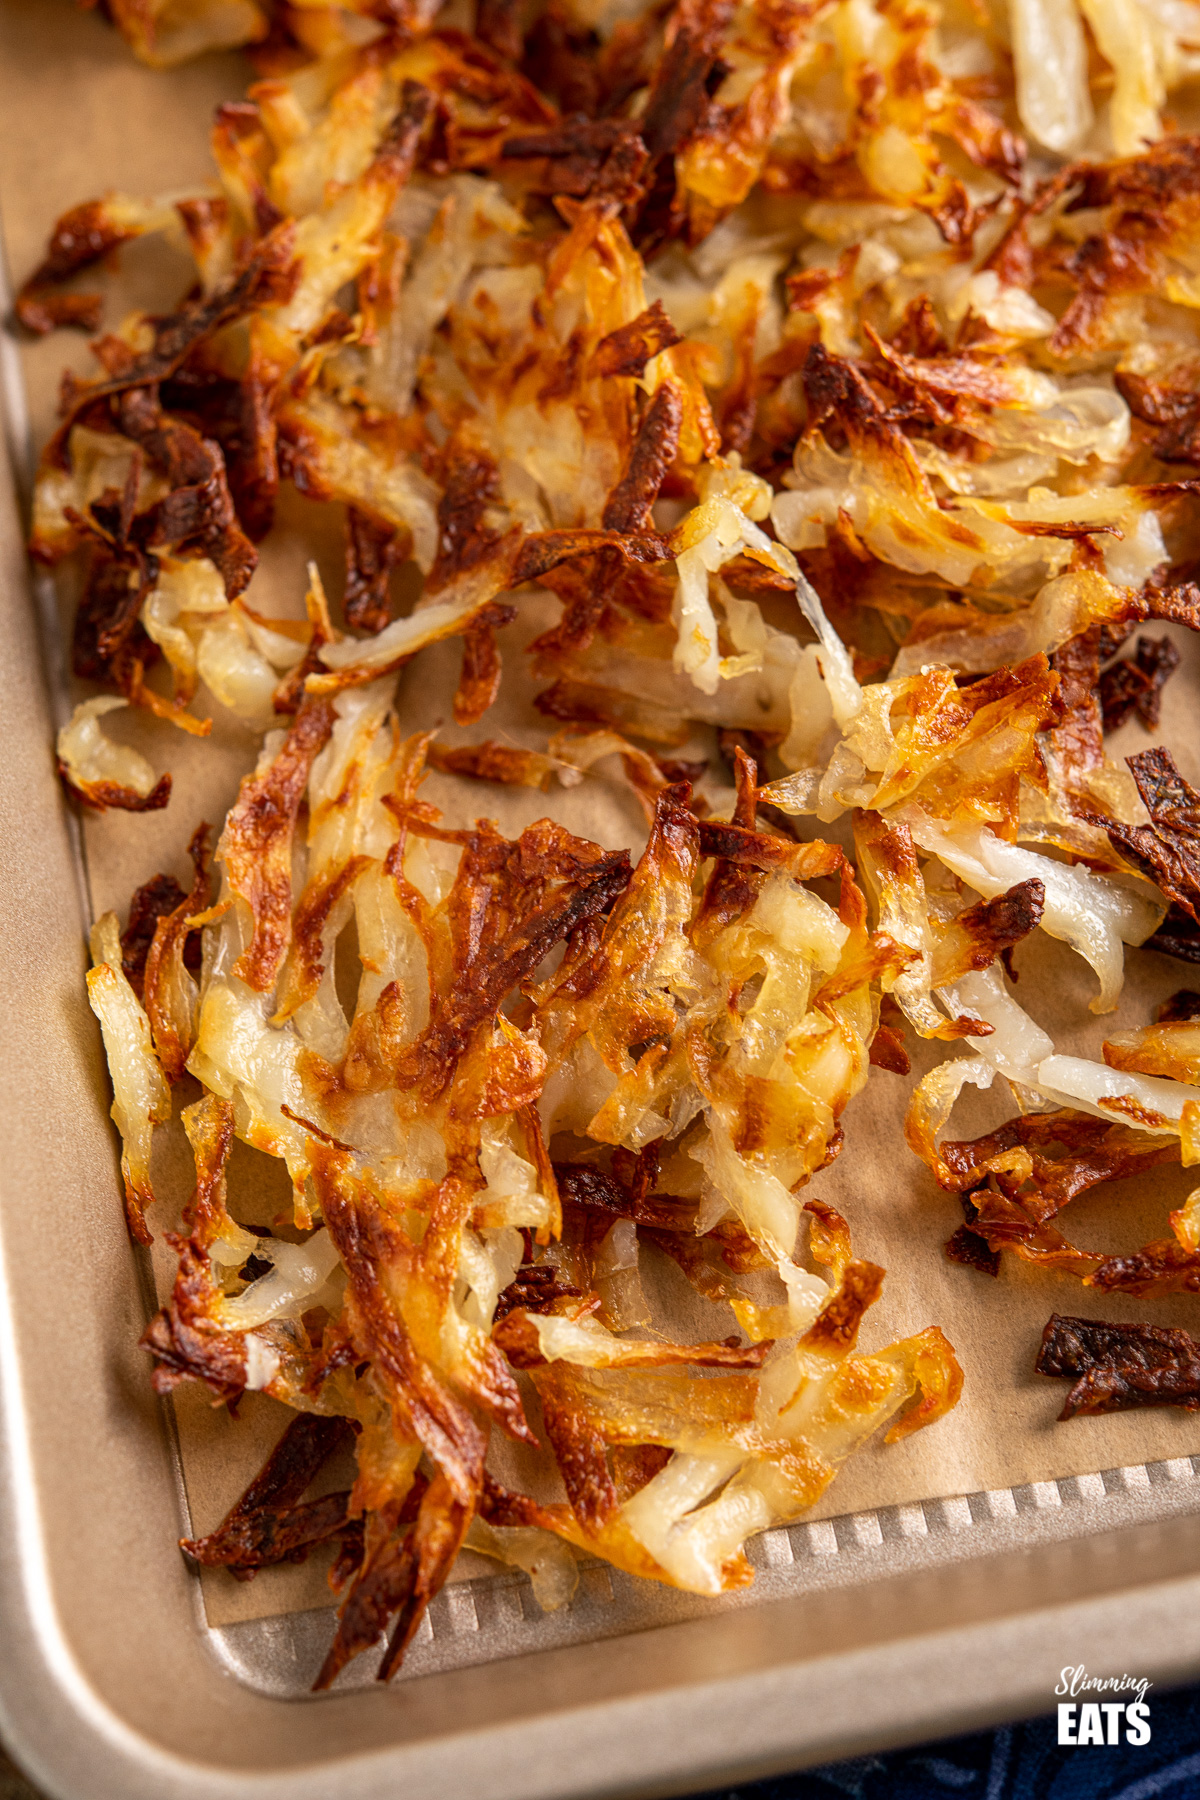 close up of shredded potato hash browns on baking tray